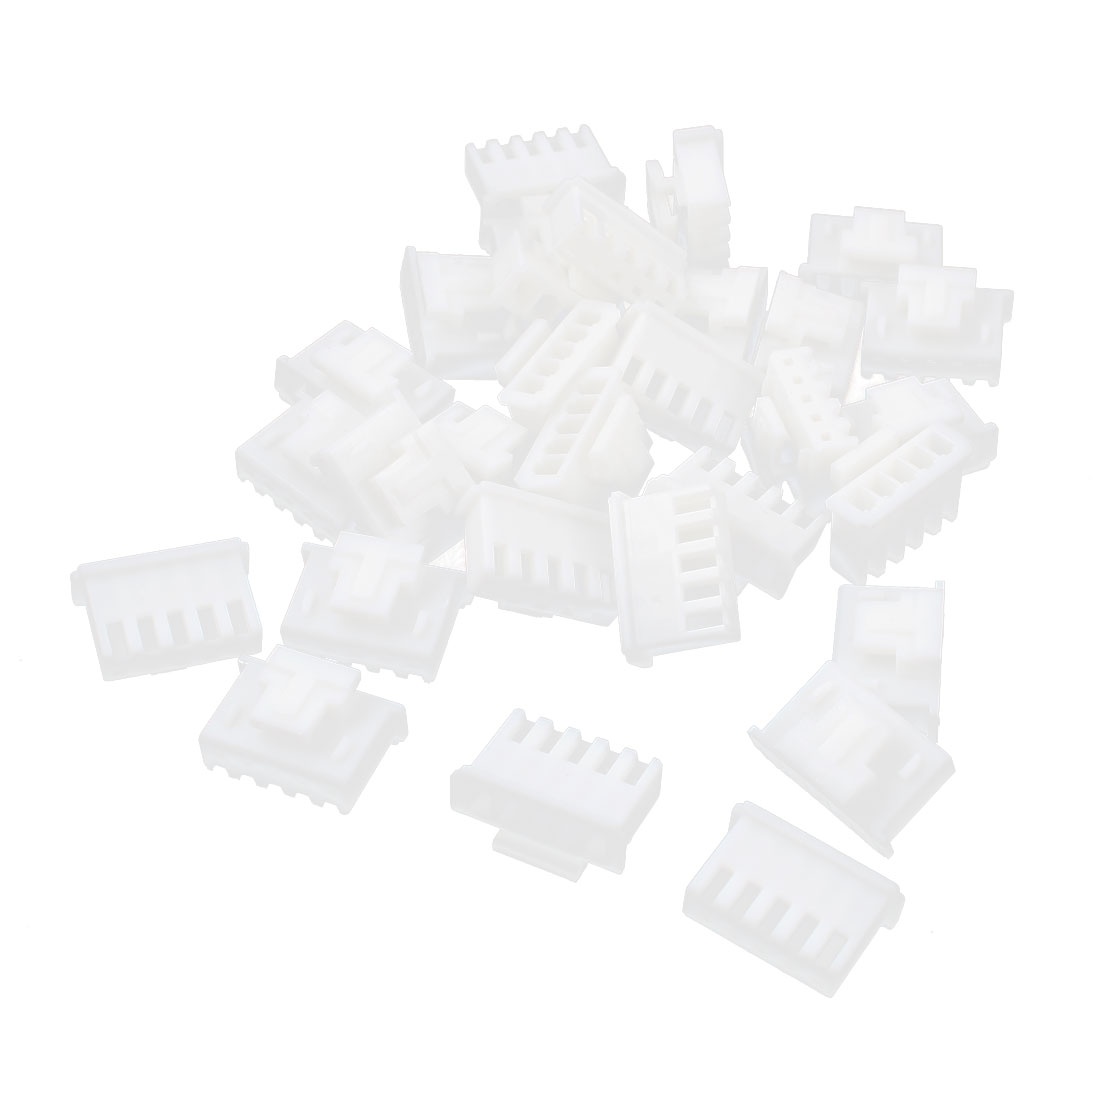 30 Pcs XHB-5Y 5-Pin 2.4mm Pitch White Plastic Female Balance Charger Connector Housing w Clip for Lithium Battery